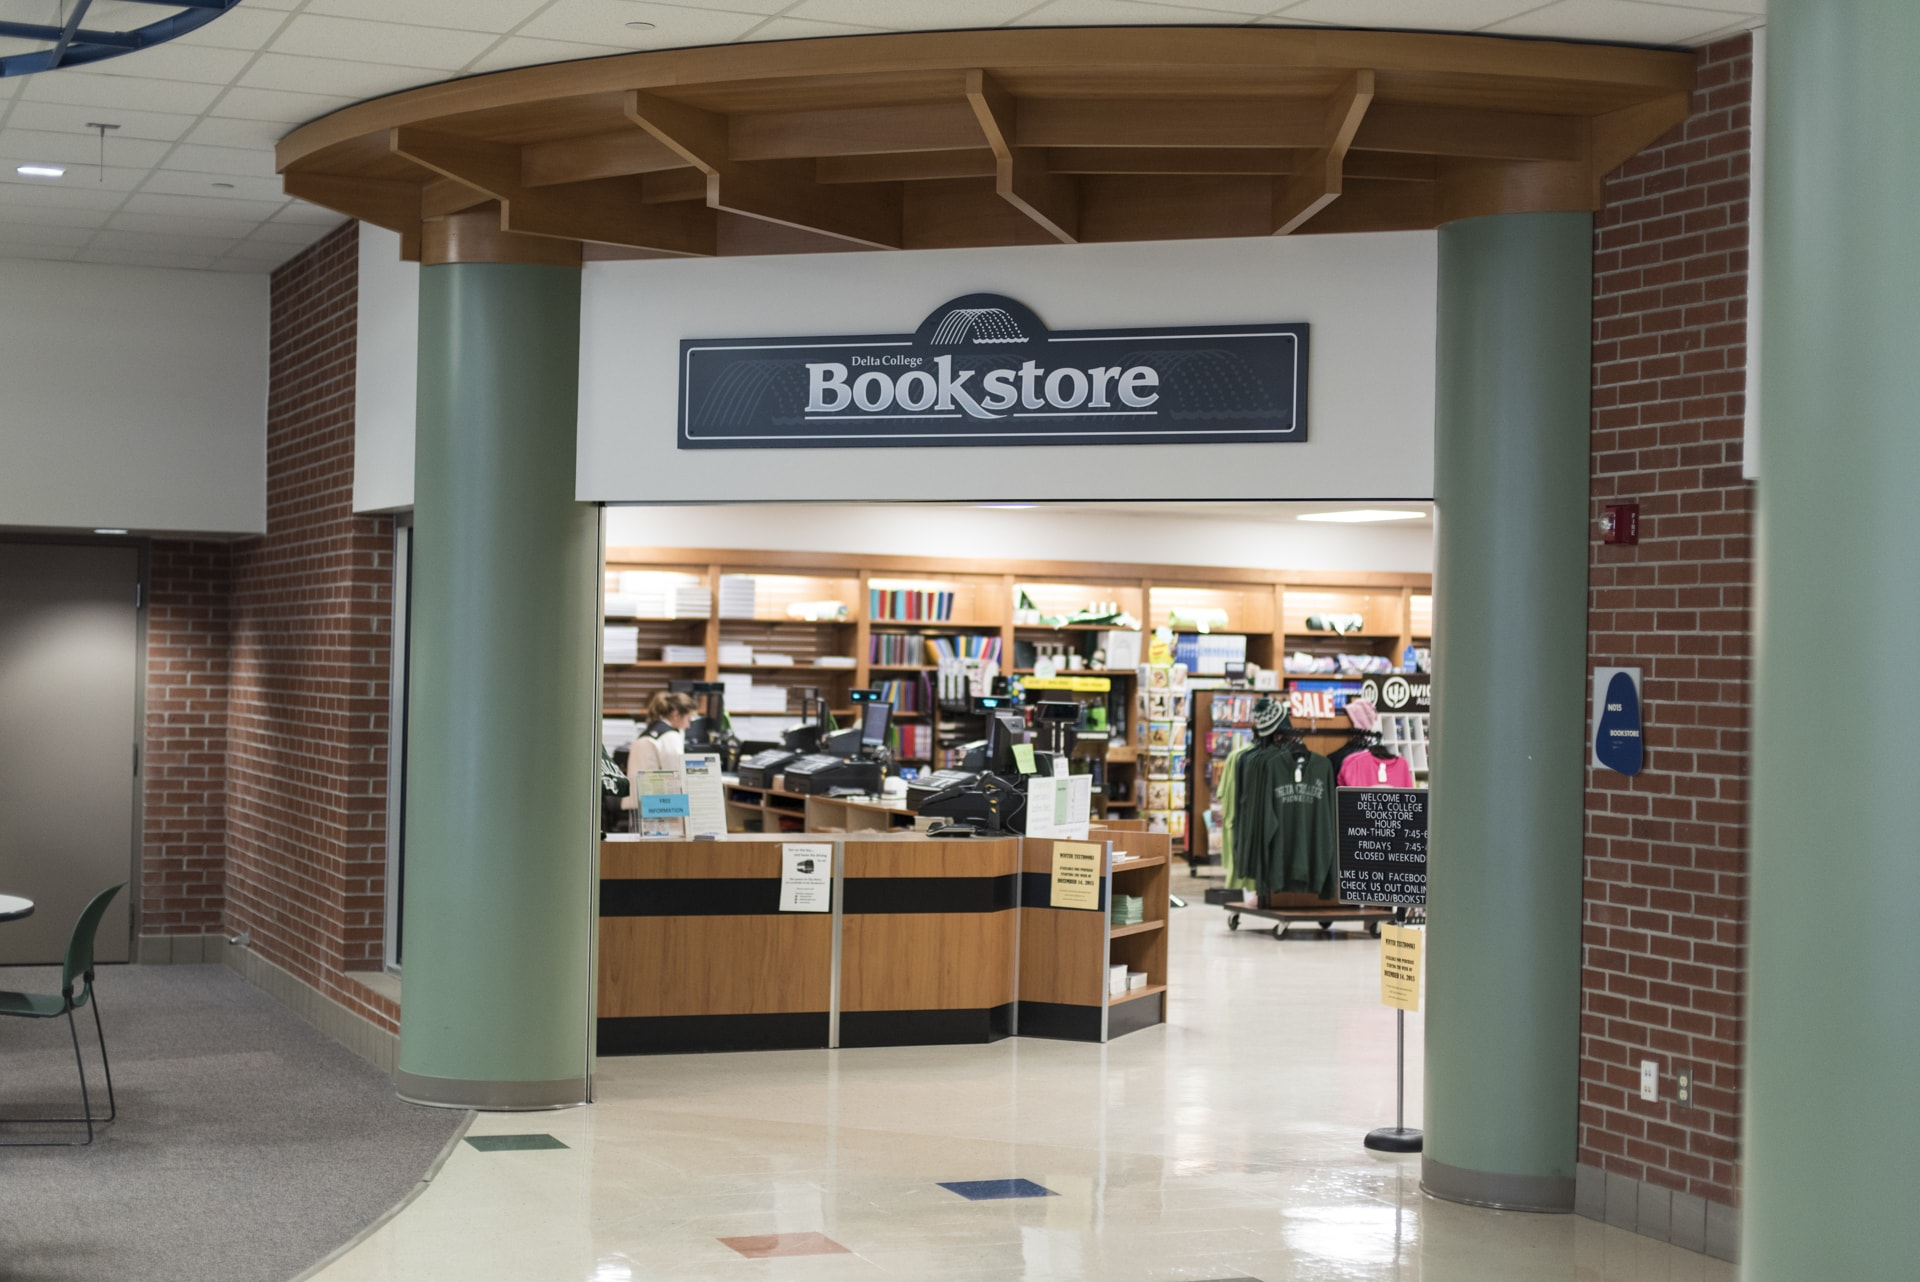 The Bookstore entrance